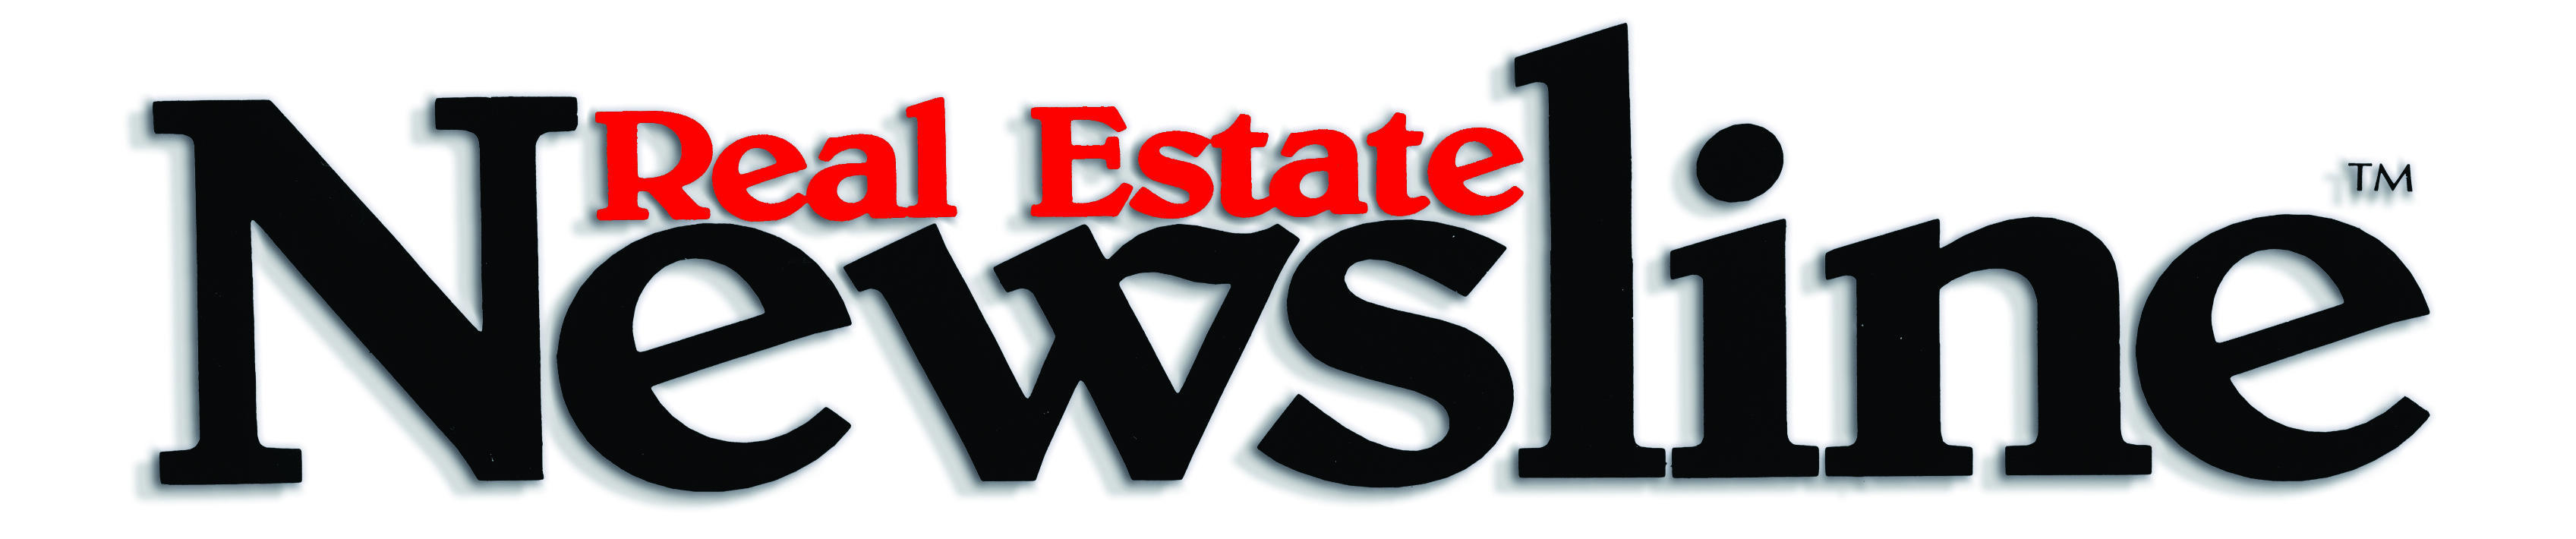 Real Estate Newsline